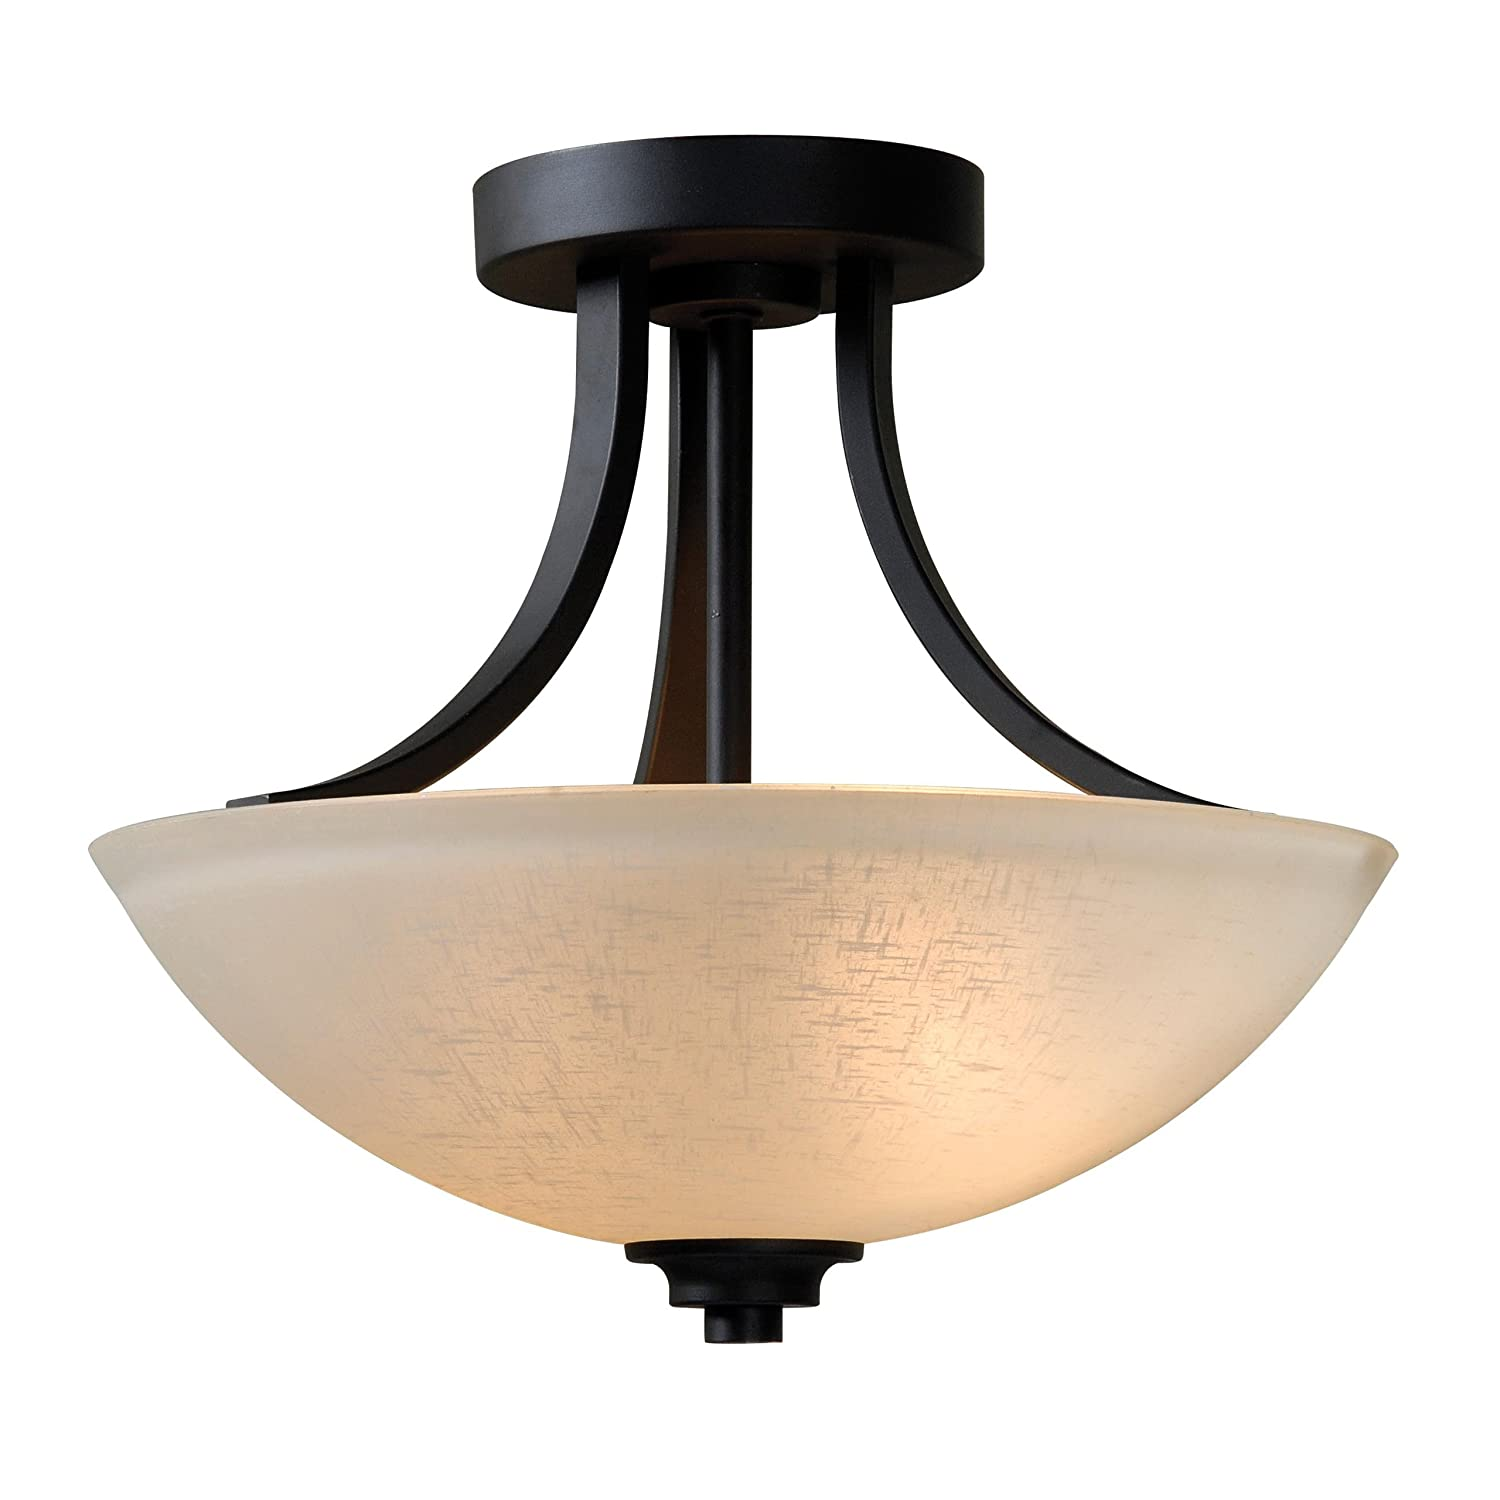 Amazon com kenroy home 93197bbz dynasty 2 light semi flush light fixture with burnished bronze finish home improvement